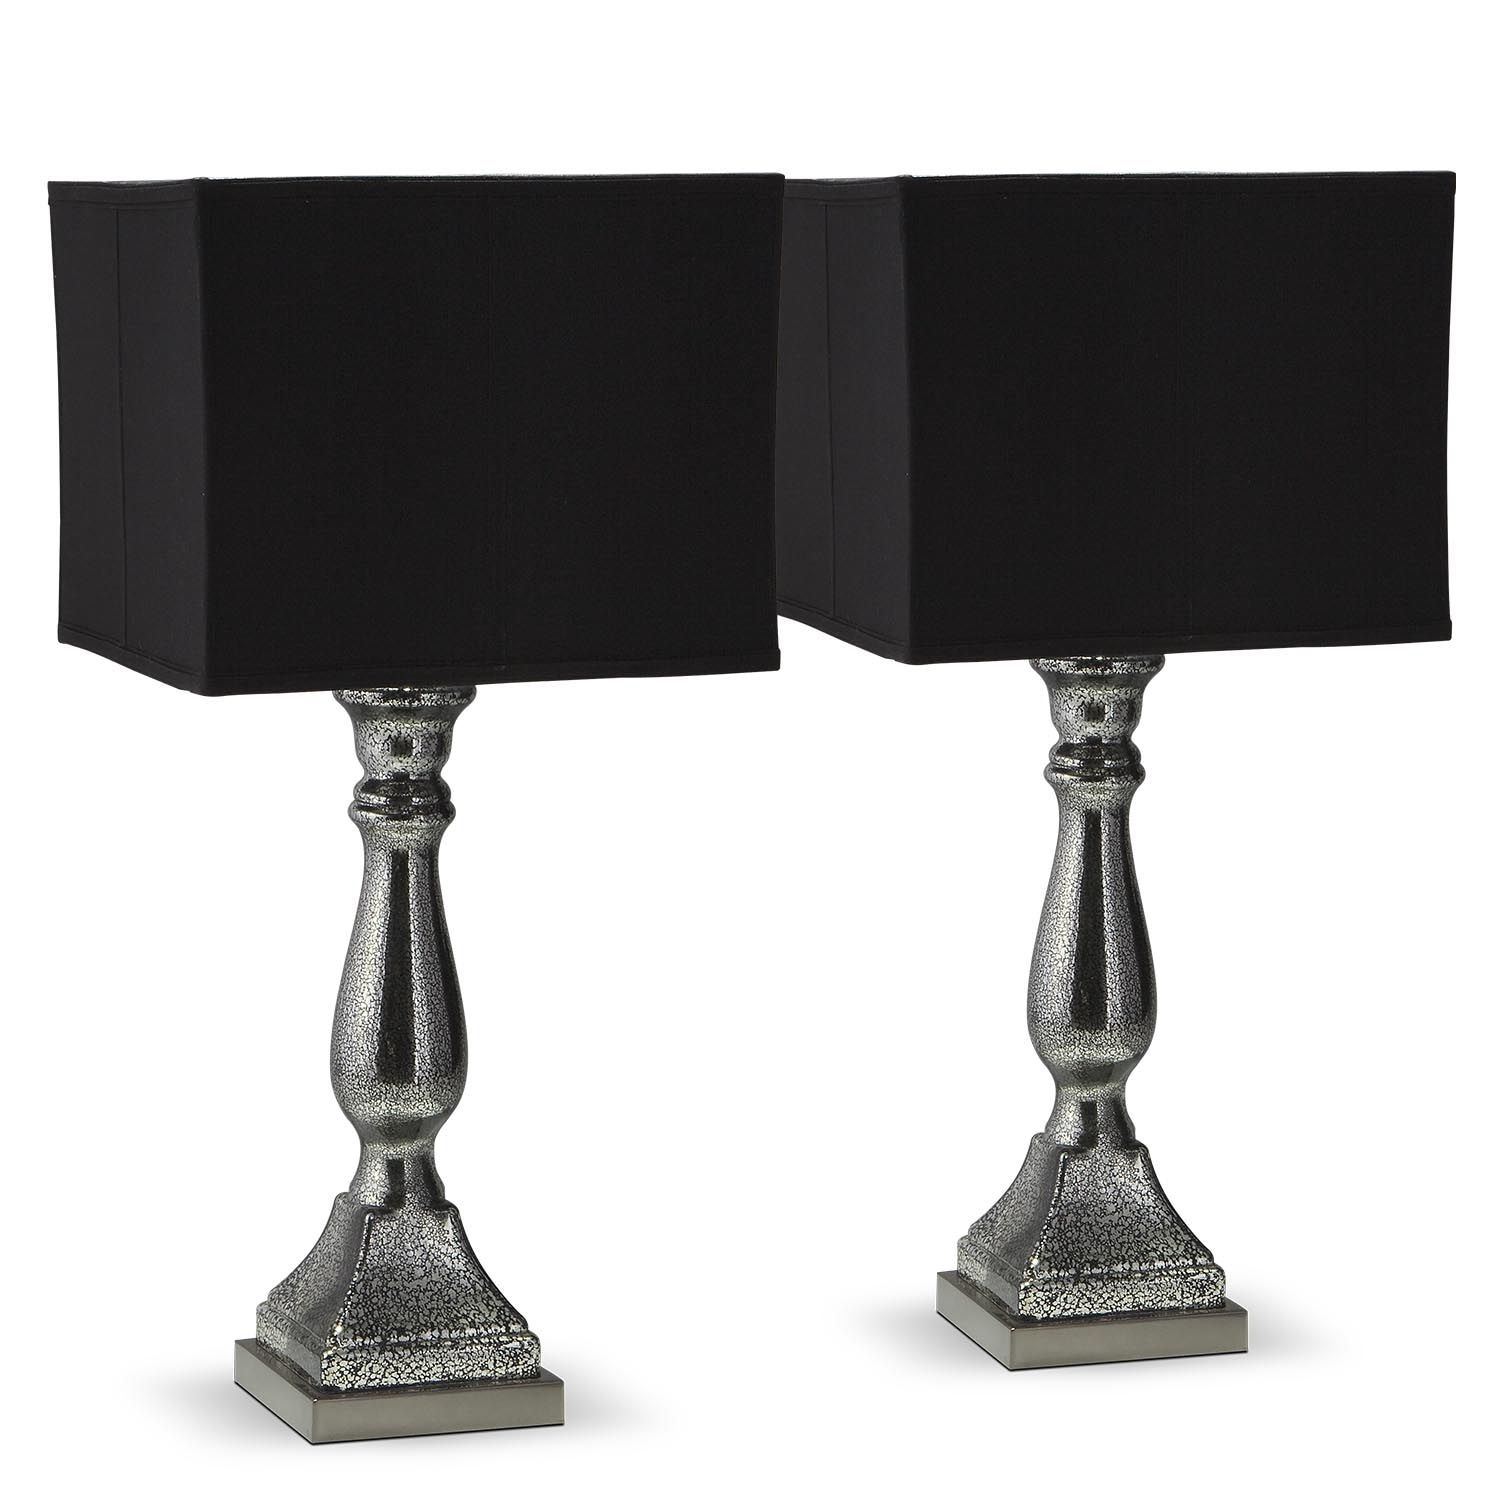 Pick Up End Table Lamps For Living Room Kmart: Silver Black Mercury 2-Pack Table Lamp Set